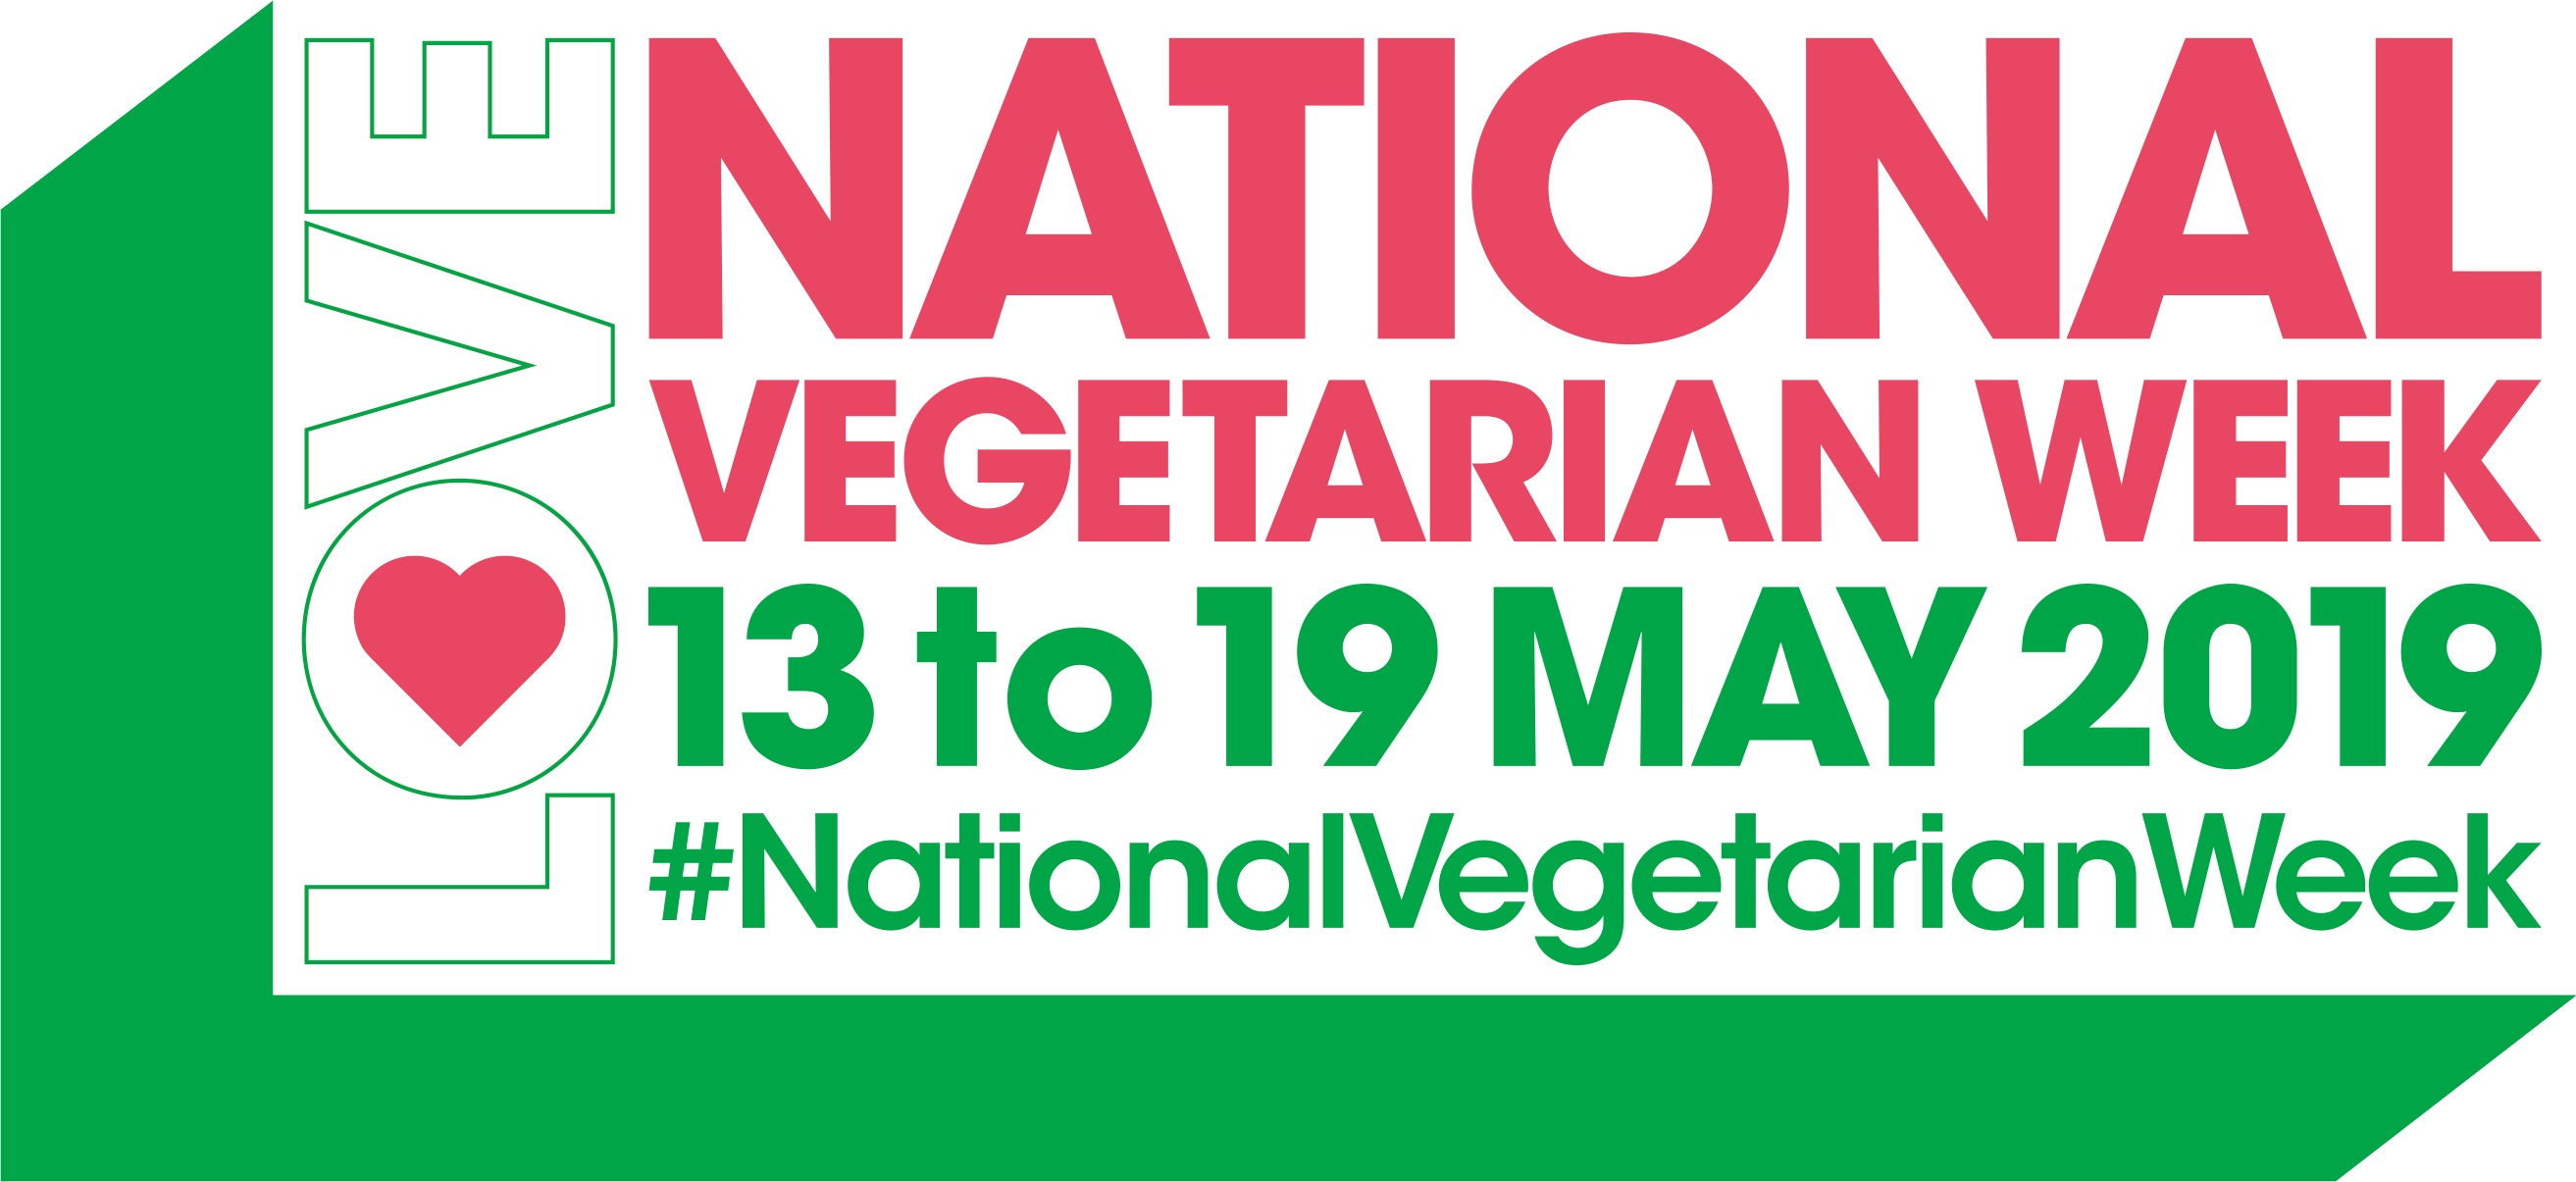 National Vegetarian Week 2019